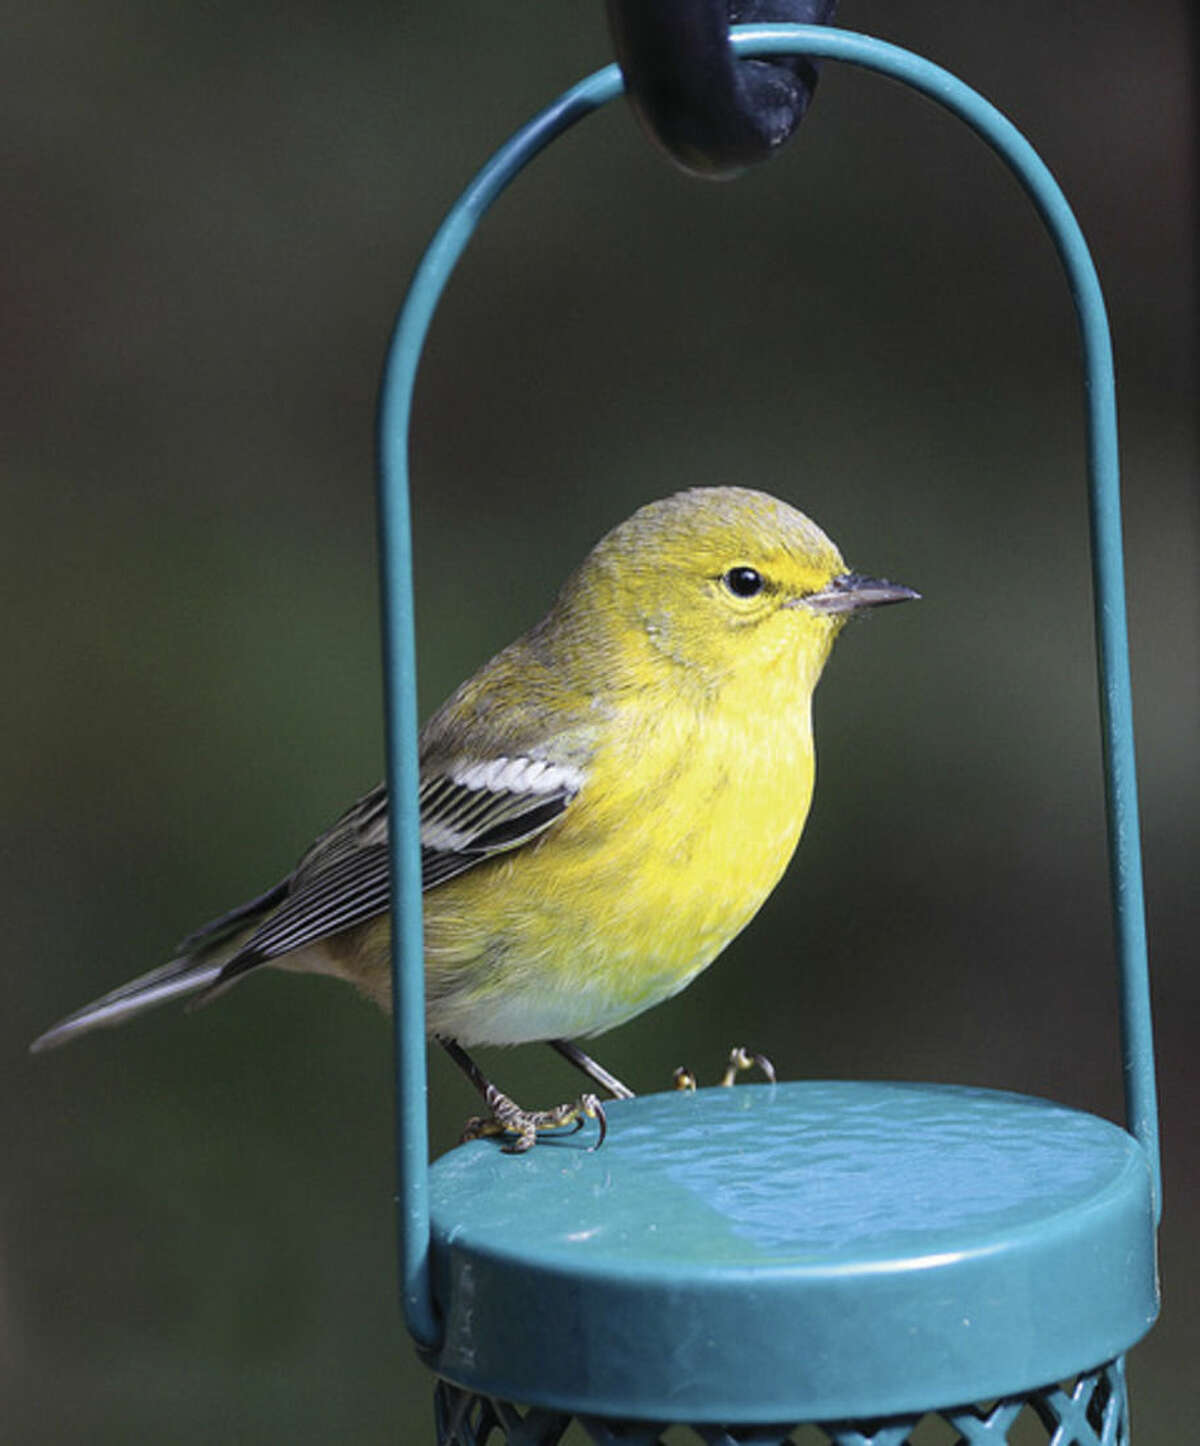 Photo by Chris Bosak A Pine Warbler visits a feeder in New England this fall.